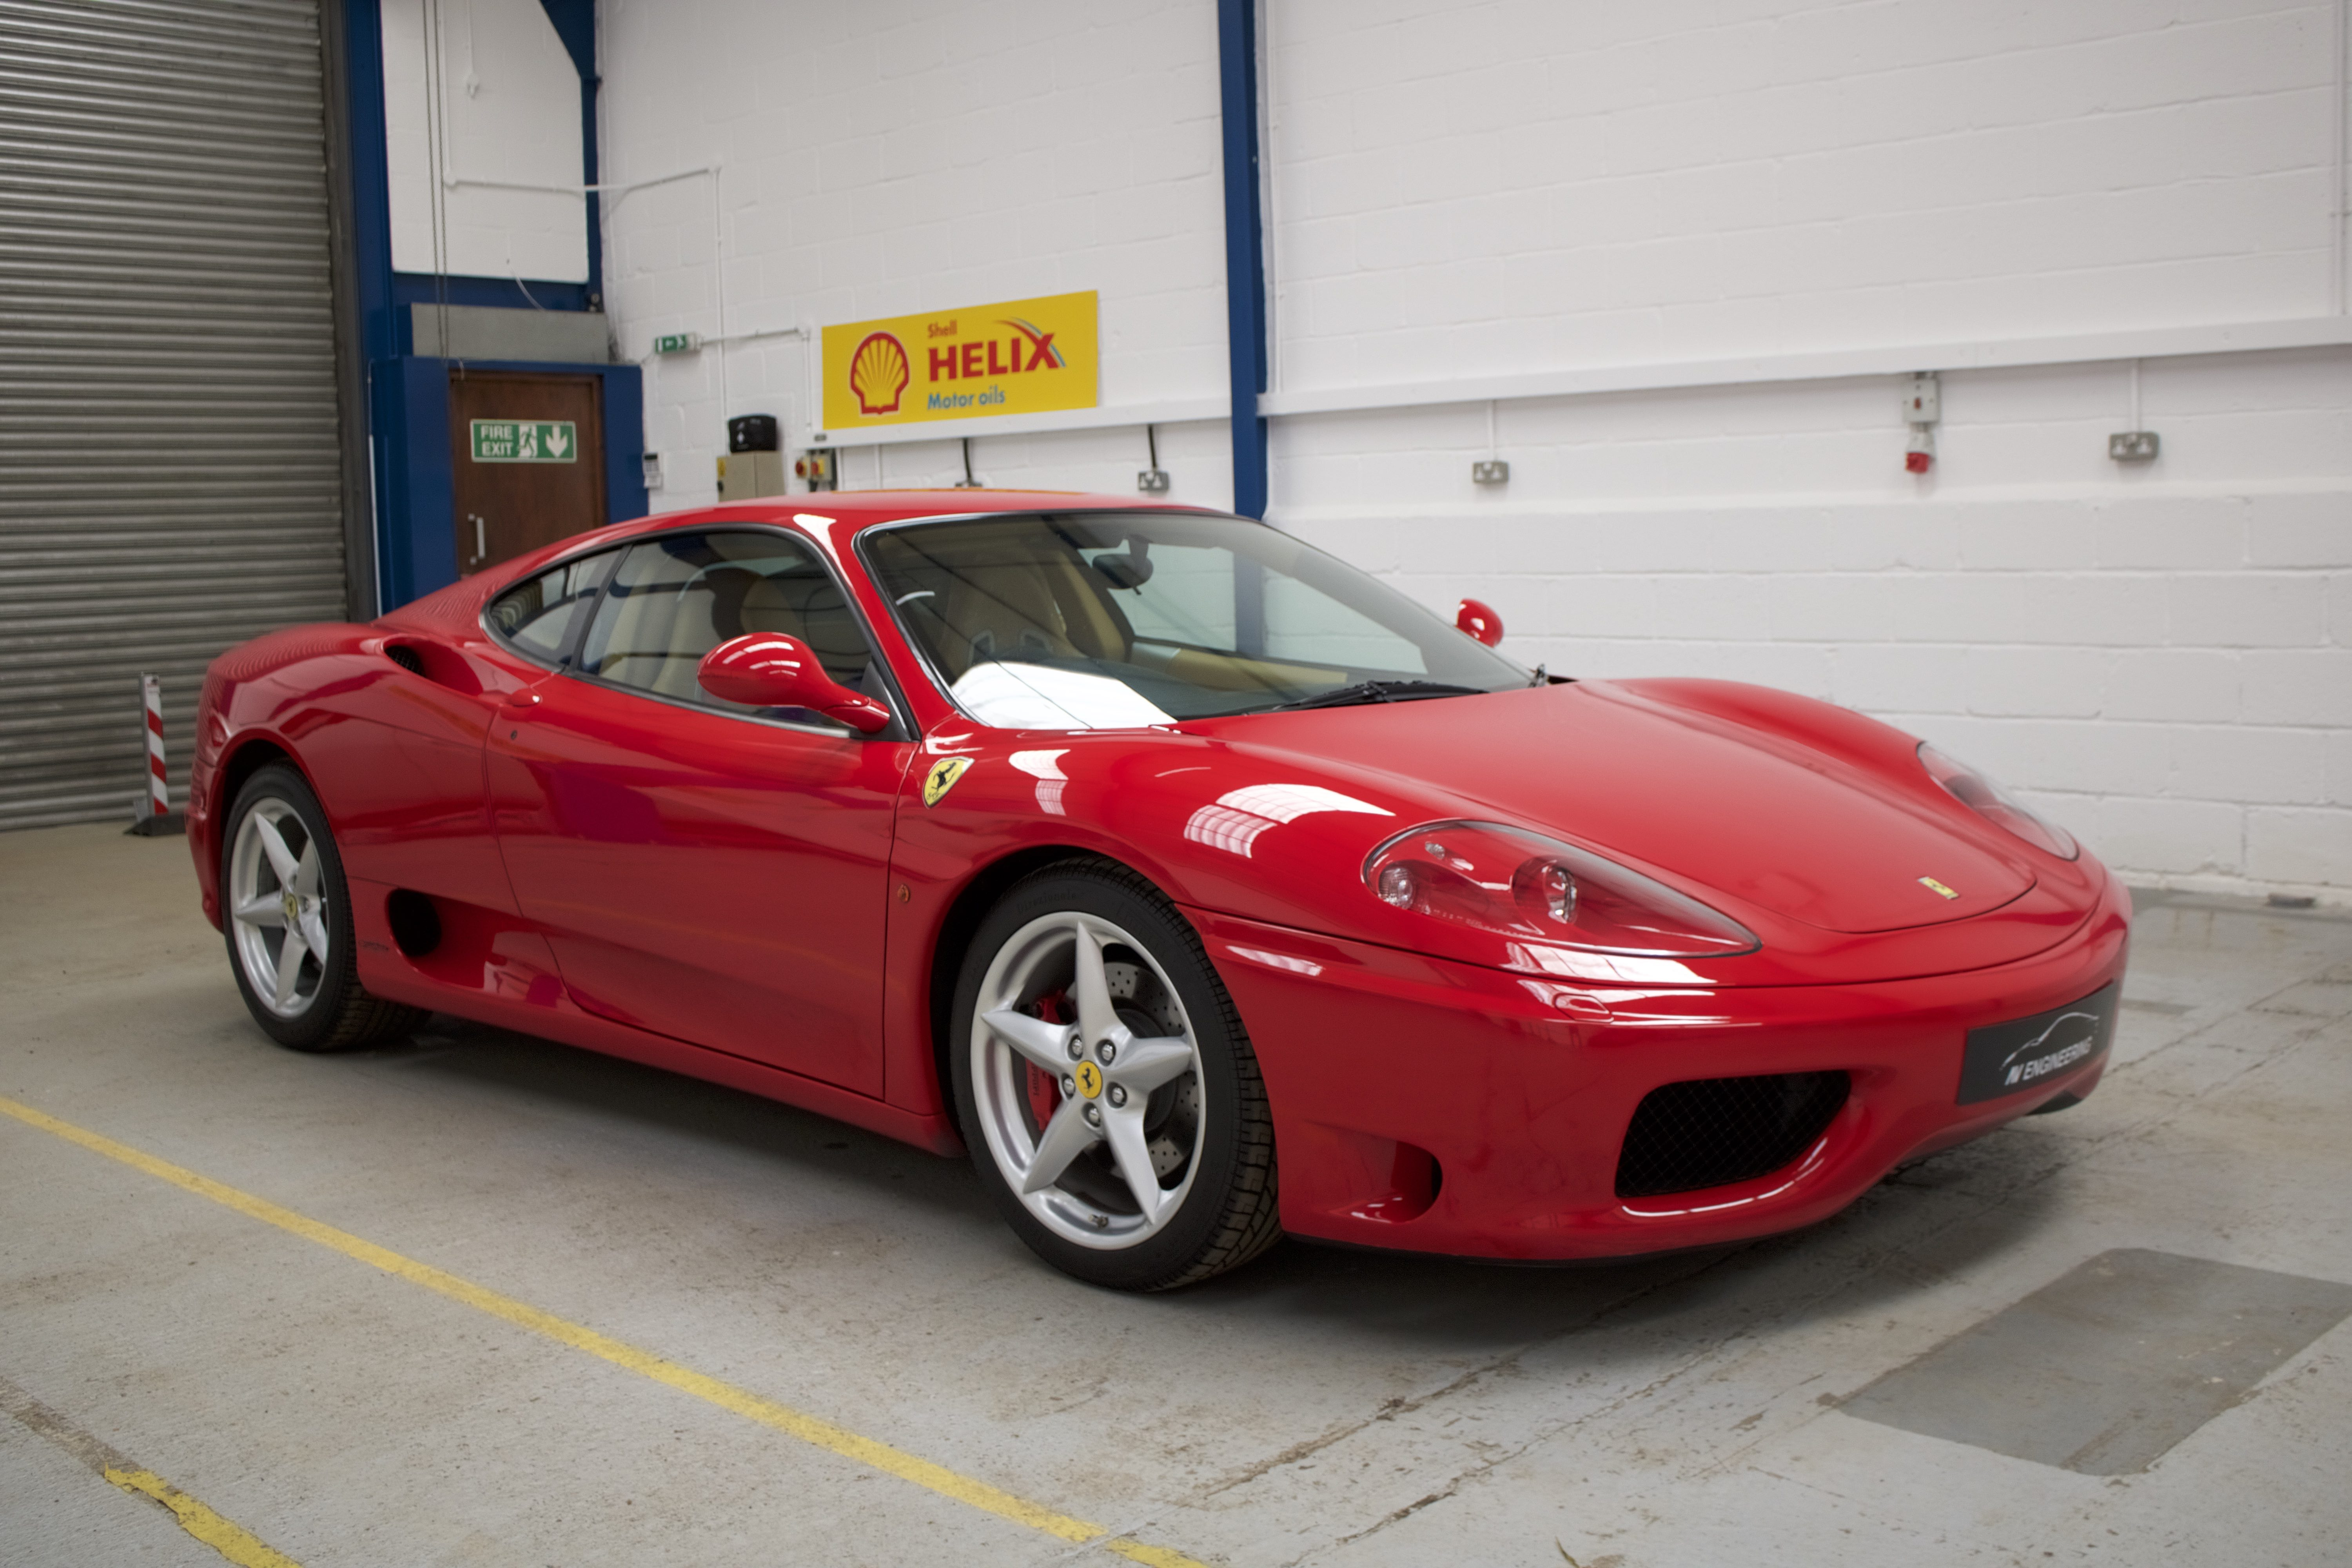 for buy its sale used opportunity ferrari s the run nine let alone have cheap gtspirit spec one rare to produced see even canada it cars in year lm with